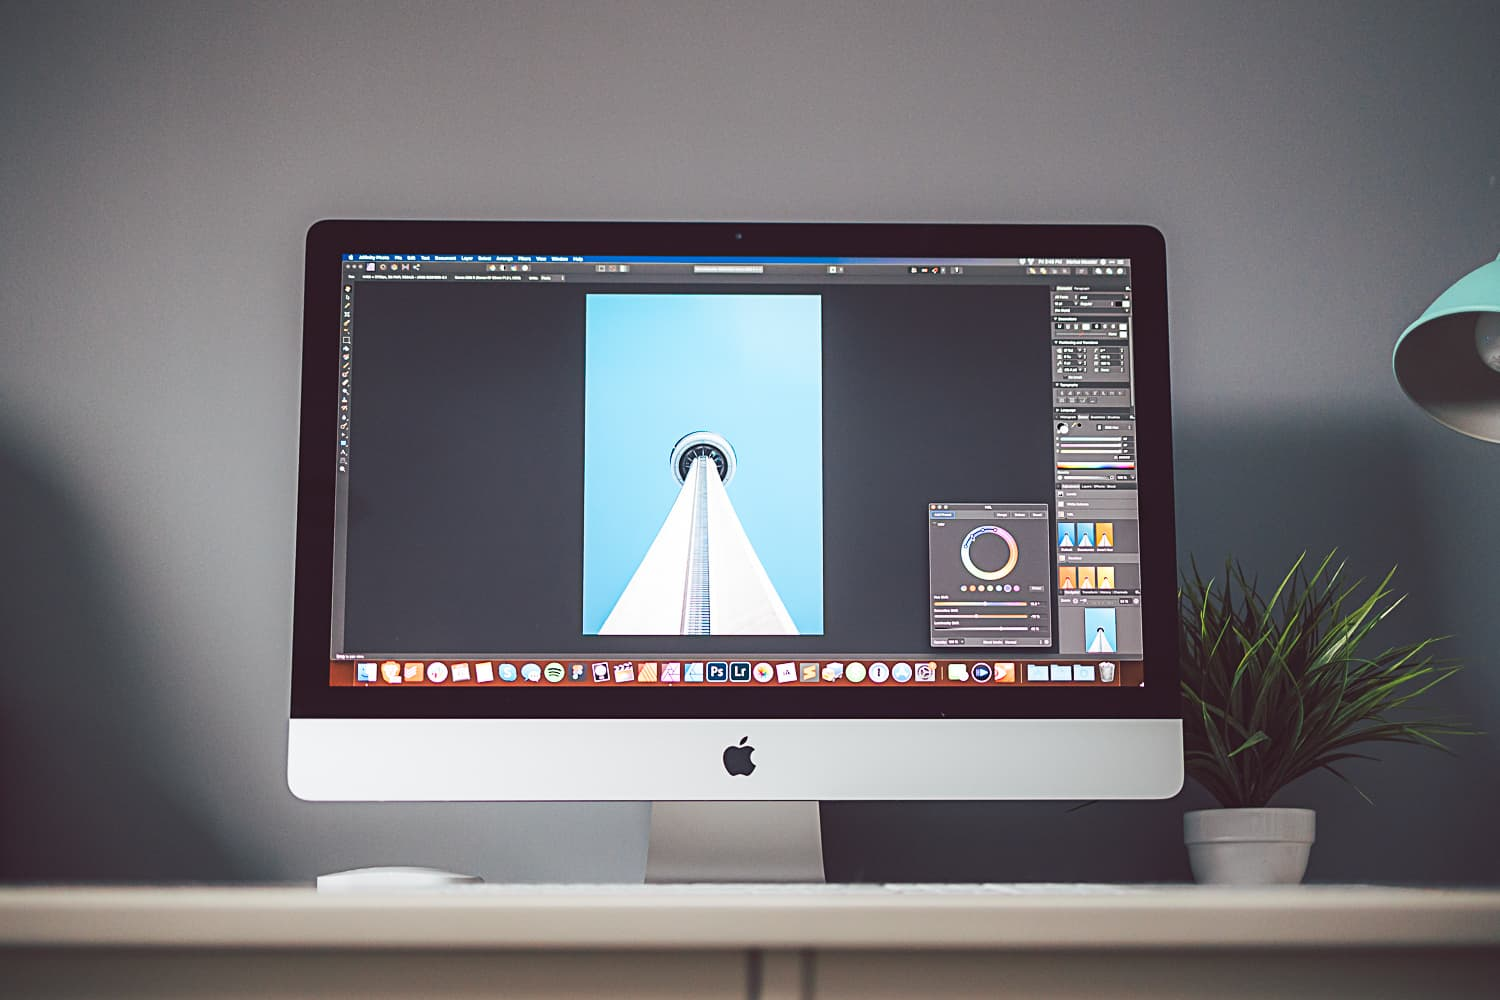 The Best Pixel Editor for macOS